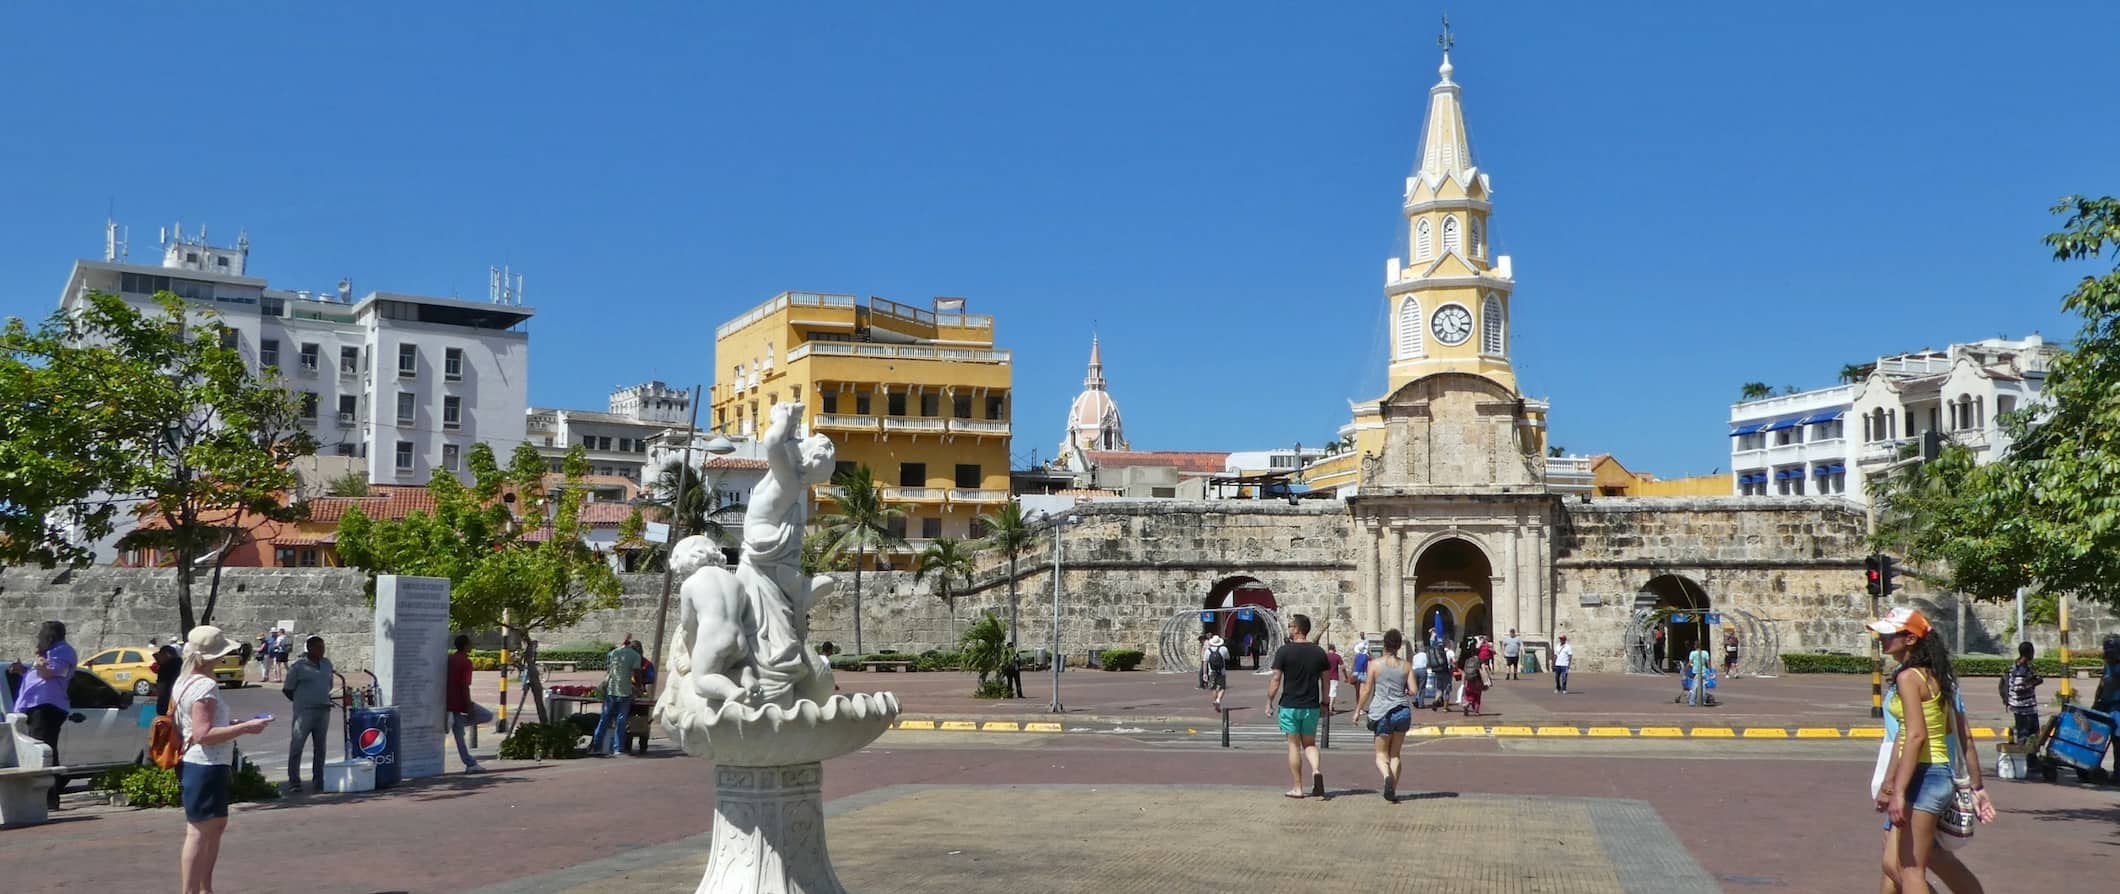 The Old Walled City in Cartagena Colombia